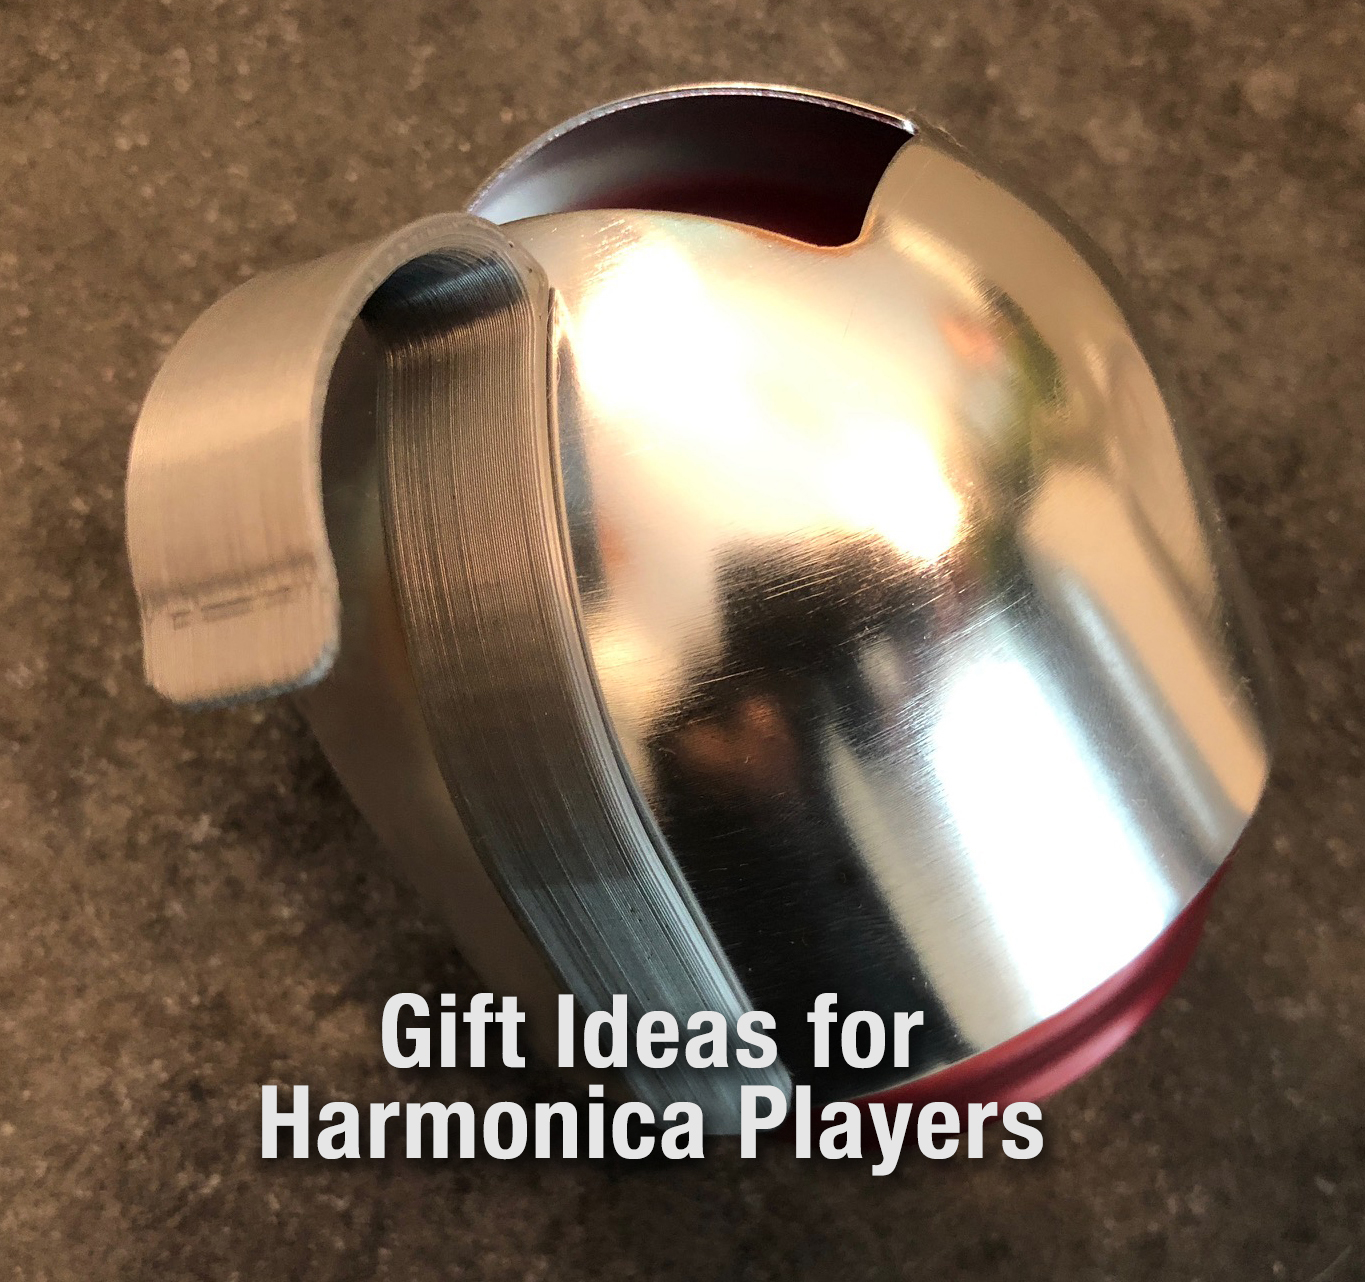 More Gift Ideas for Harmonica Players…